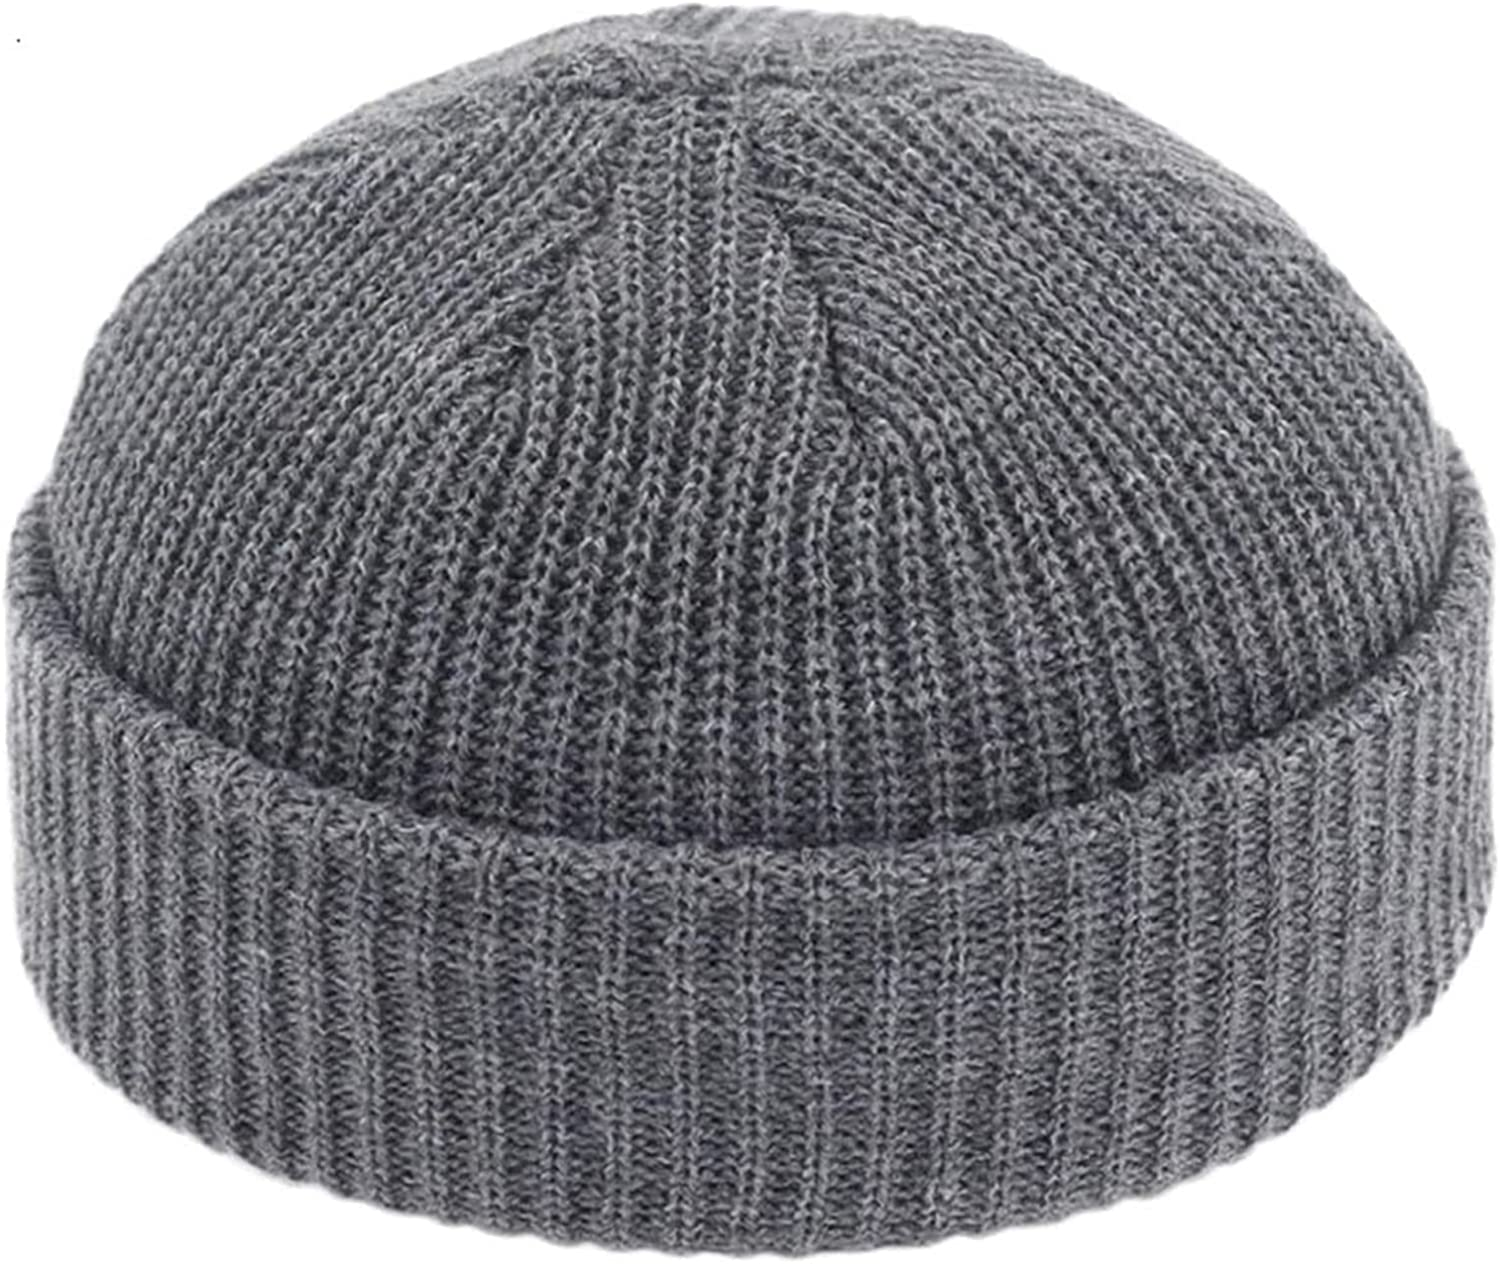 Youdert Hats Loose Winter hat Knitted and depot Warm Free shipping anywhere in the nation Cap s Soft Woolen